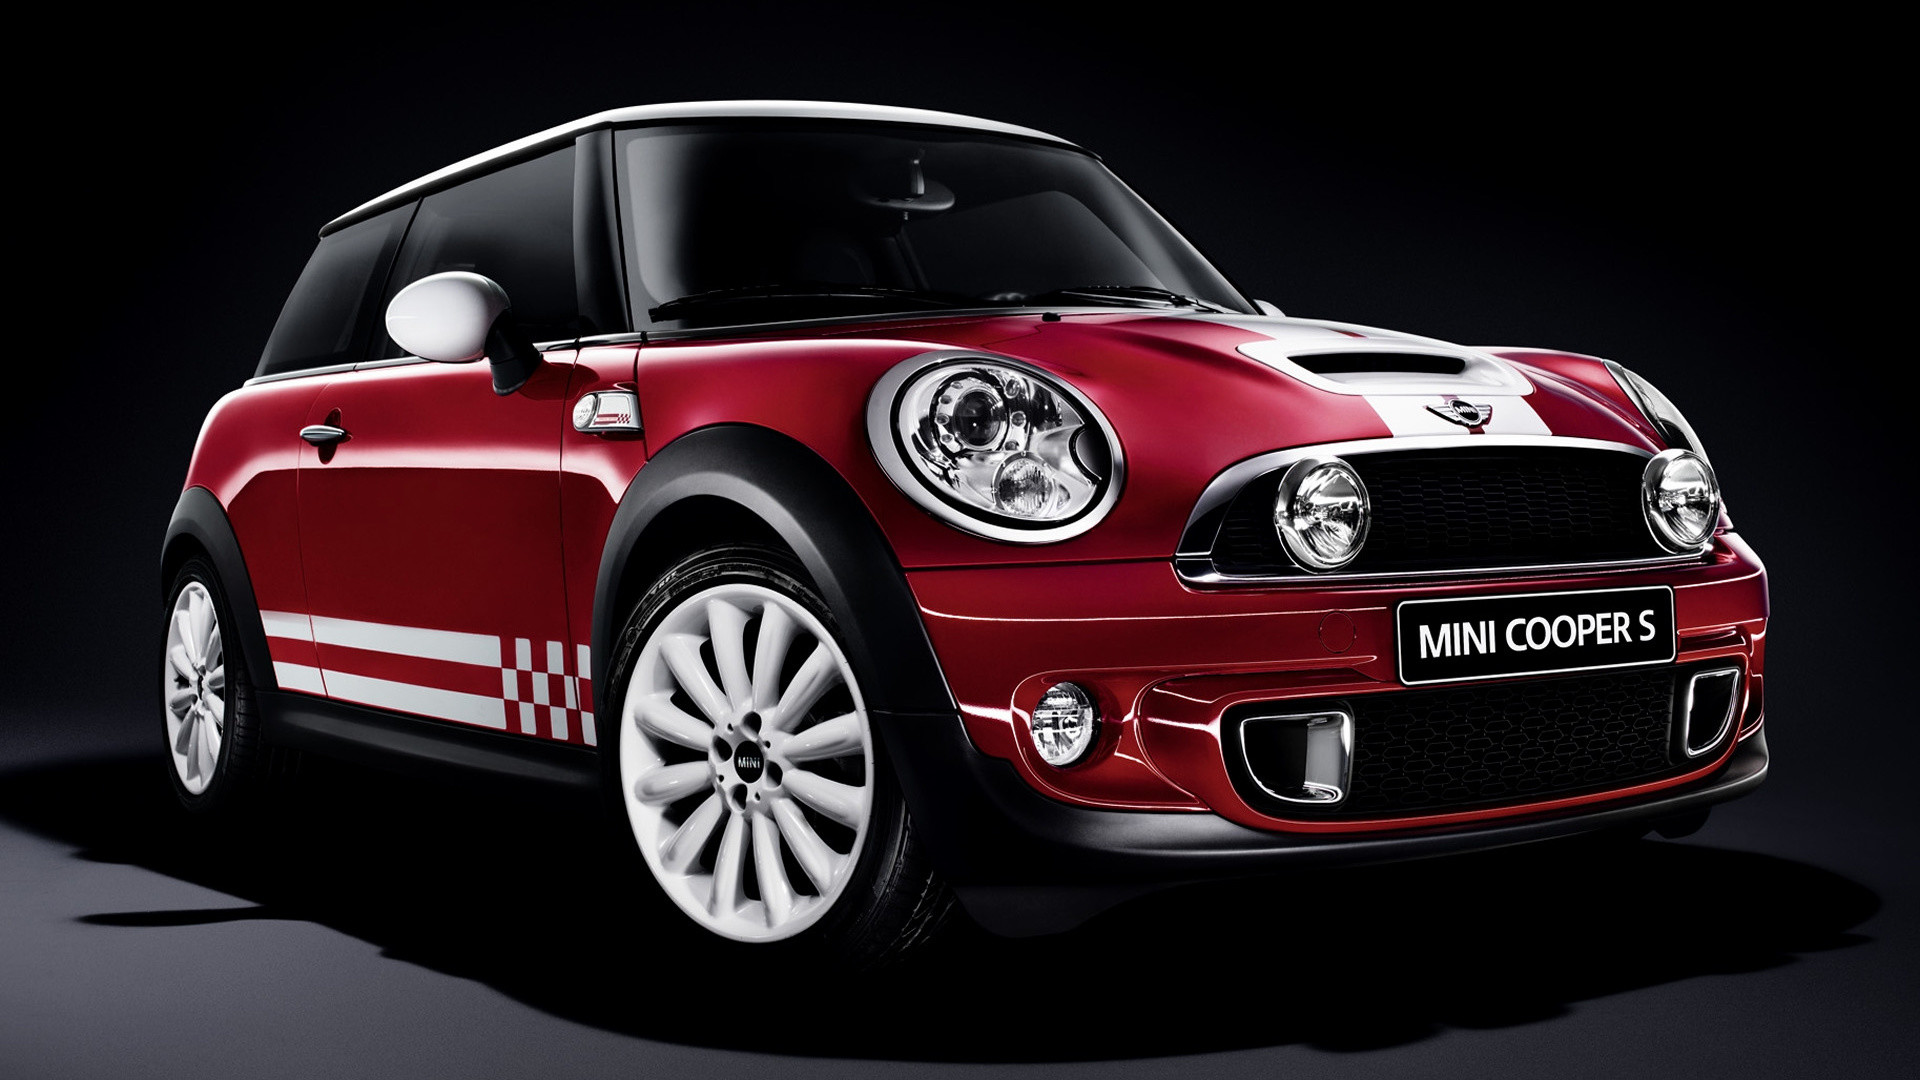 Mini Cooper 2018 Wallpaper ·①